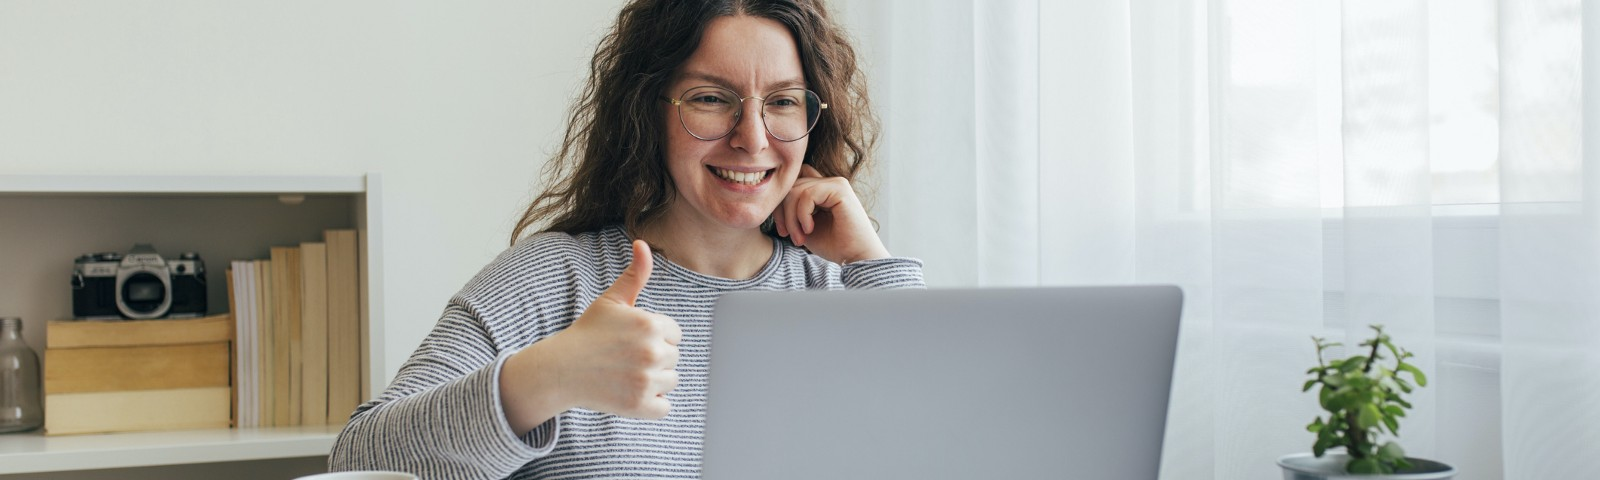 A person with long hair sitting at a laptop next to a window, smiling and awkwardly giving a thumbs-up to the camera.